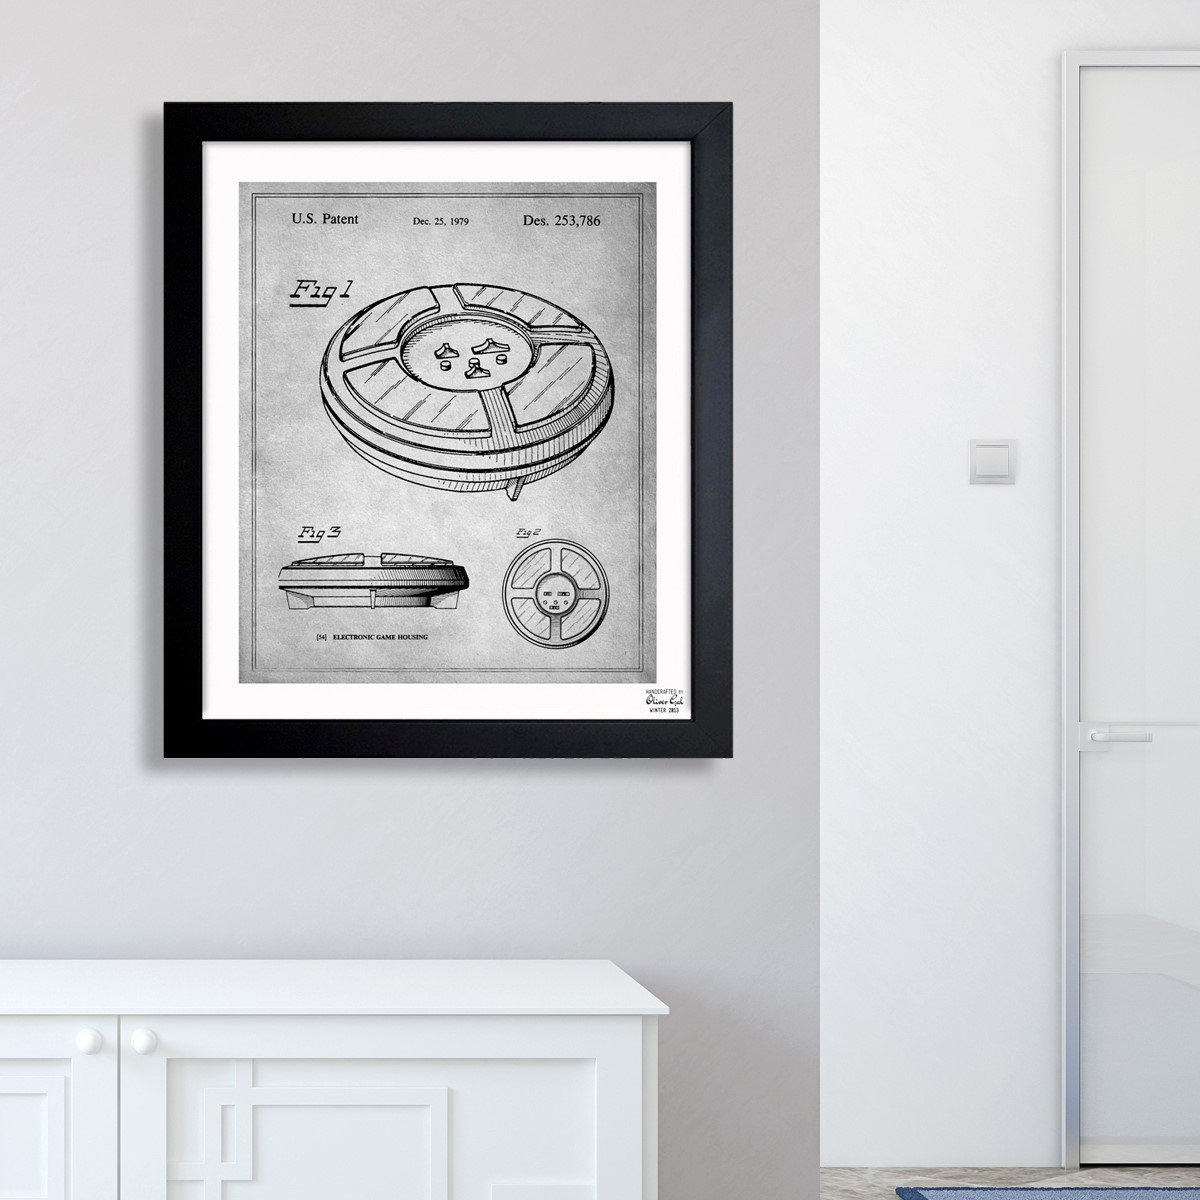 Amazon.com: Simon, 1979 - Gray Vintage Framed Wall Art Print for Home decor & Office. The Classic Wall Decor Blueprint Collection by The Oliver Gal Artist ...